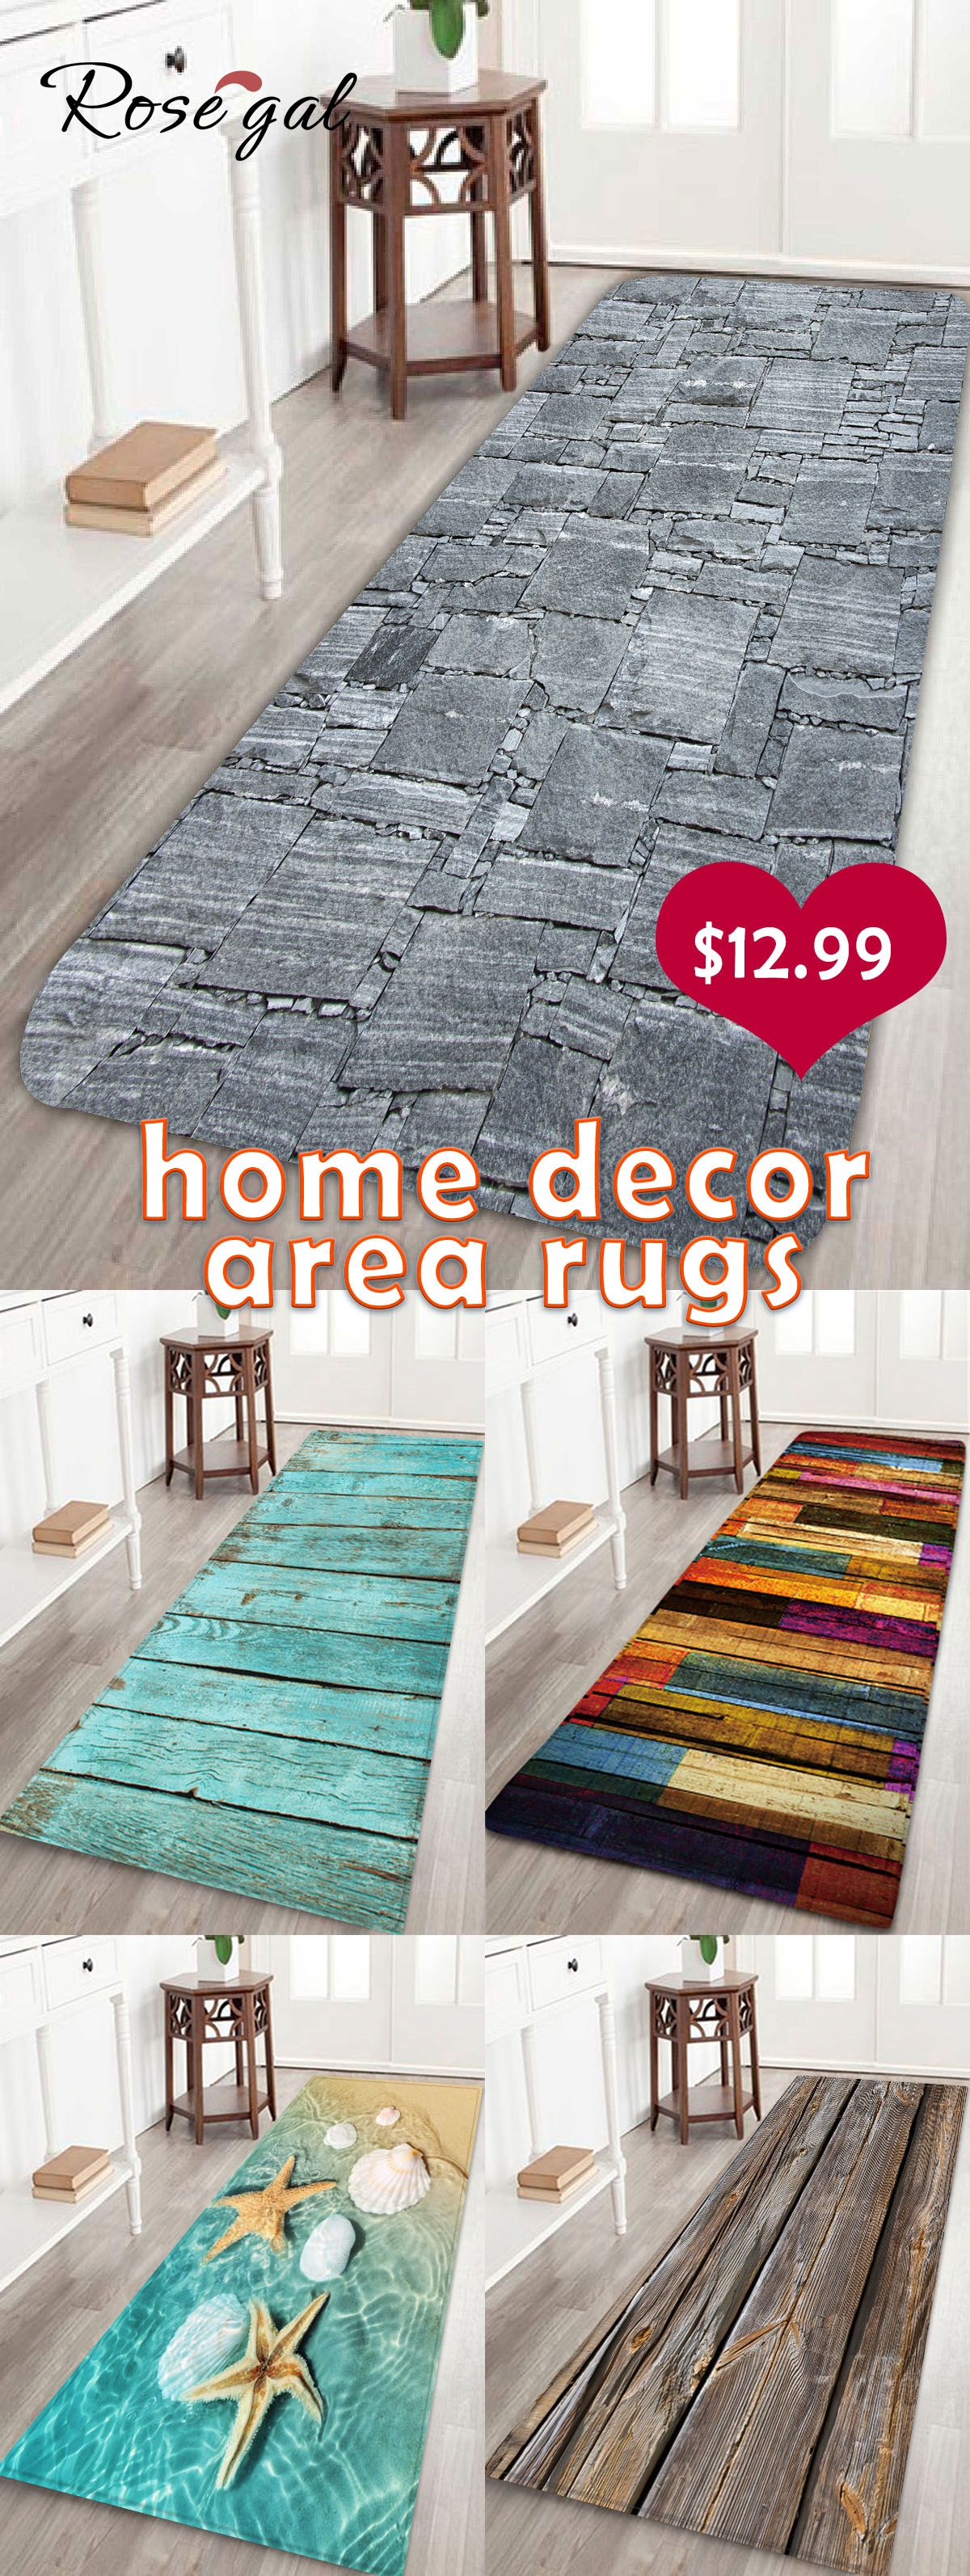 Free Shipping Over 45 Up To 75 Off Rosegal Home Decor